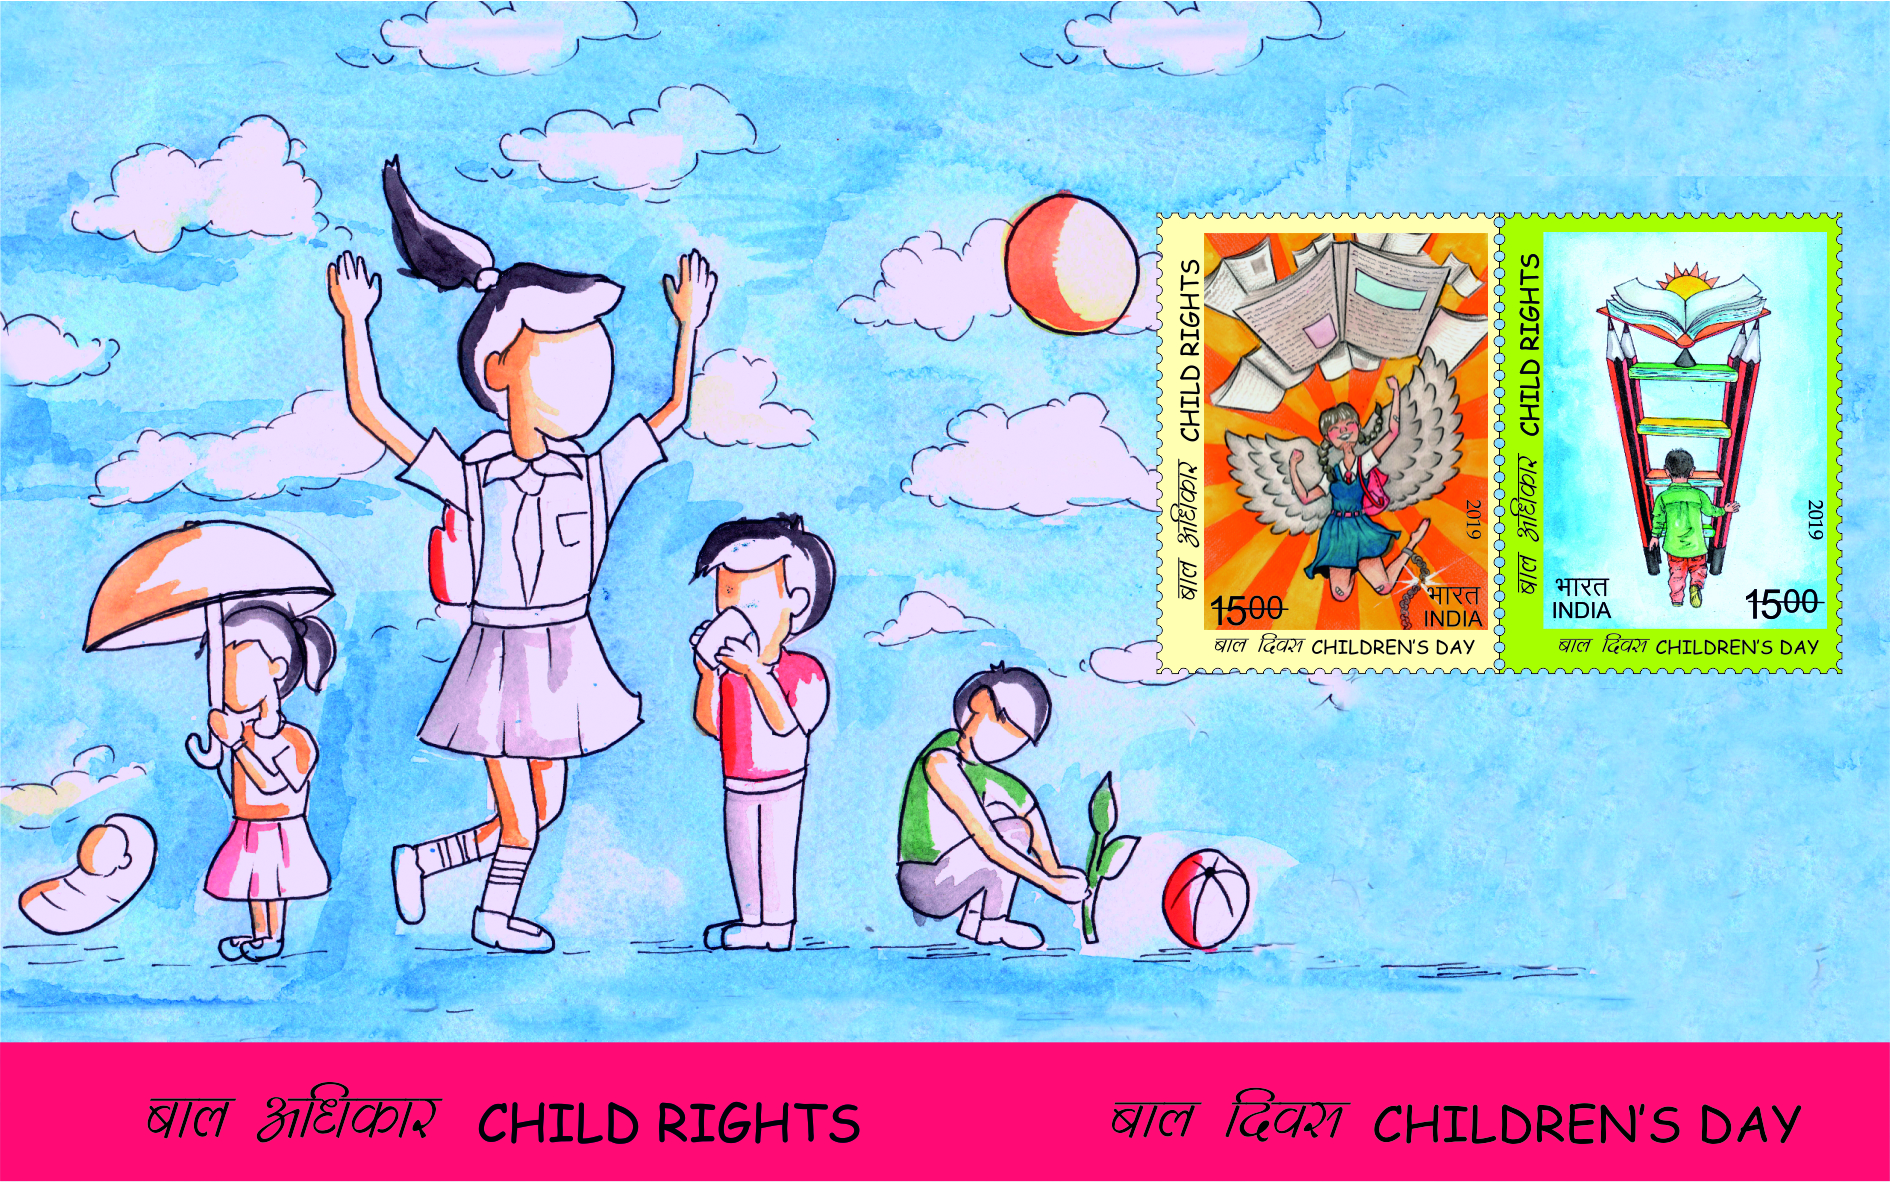 CHILD RIGHTS MS IMAGE